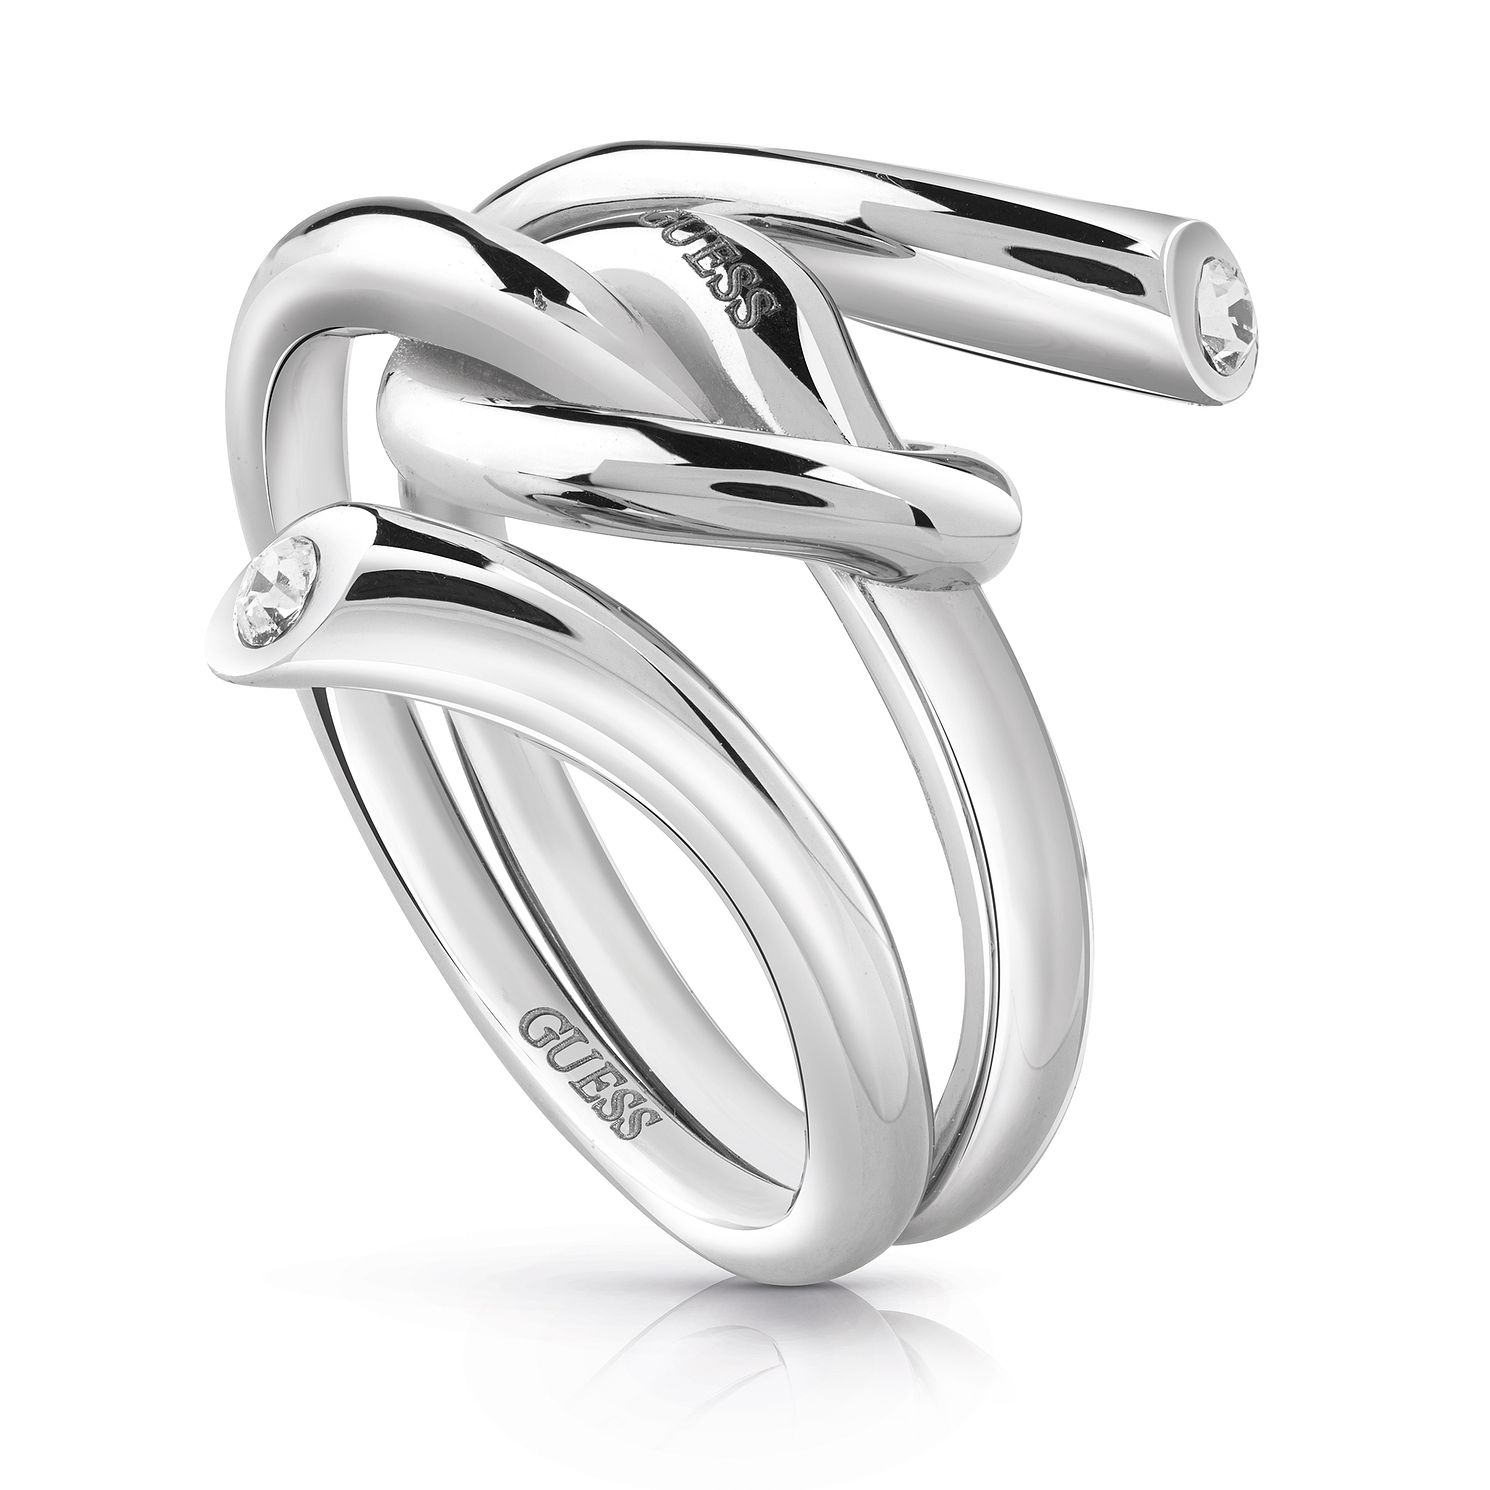 Guess Stainless Steel Swarovski Crystal Knot Ring - Product number 5922895